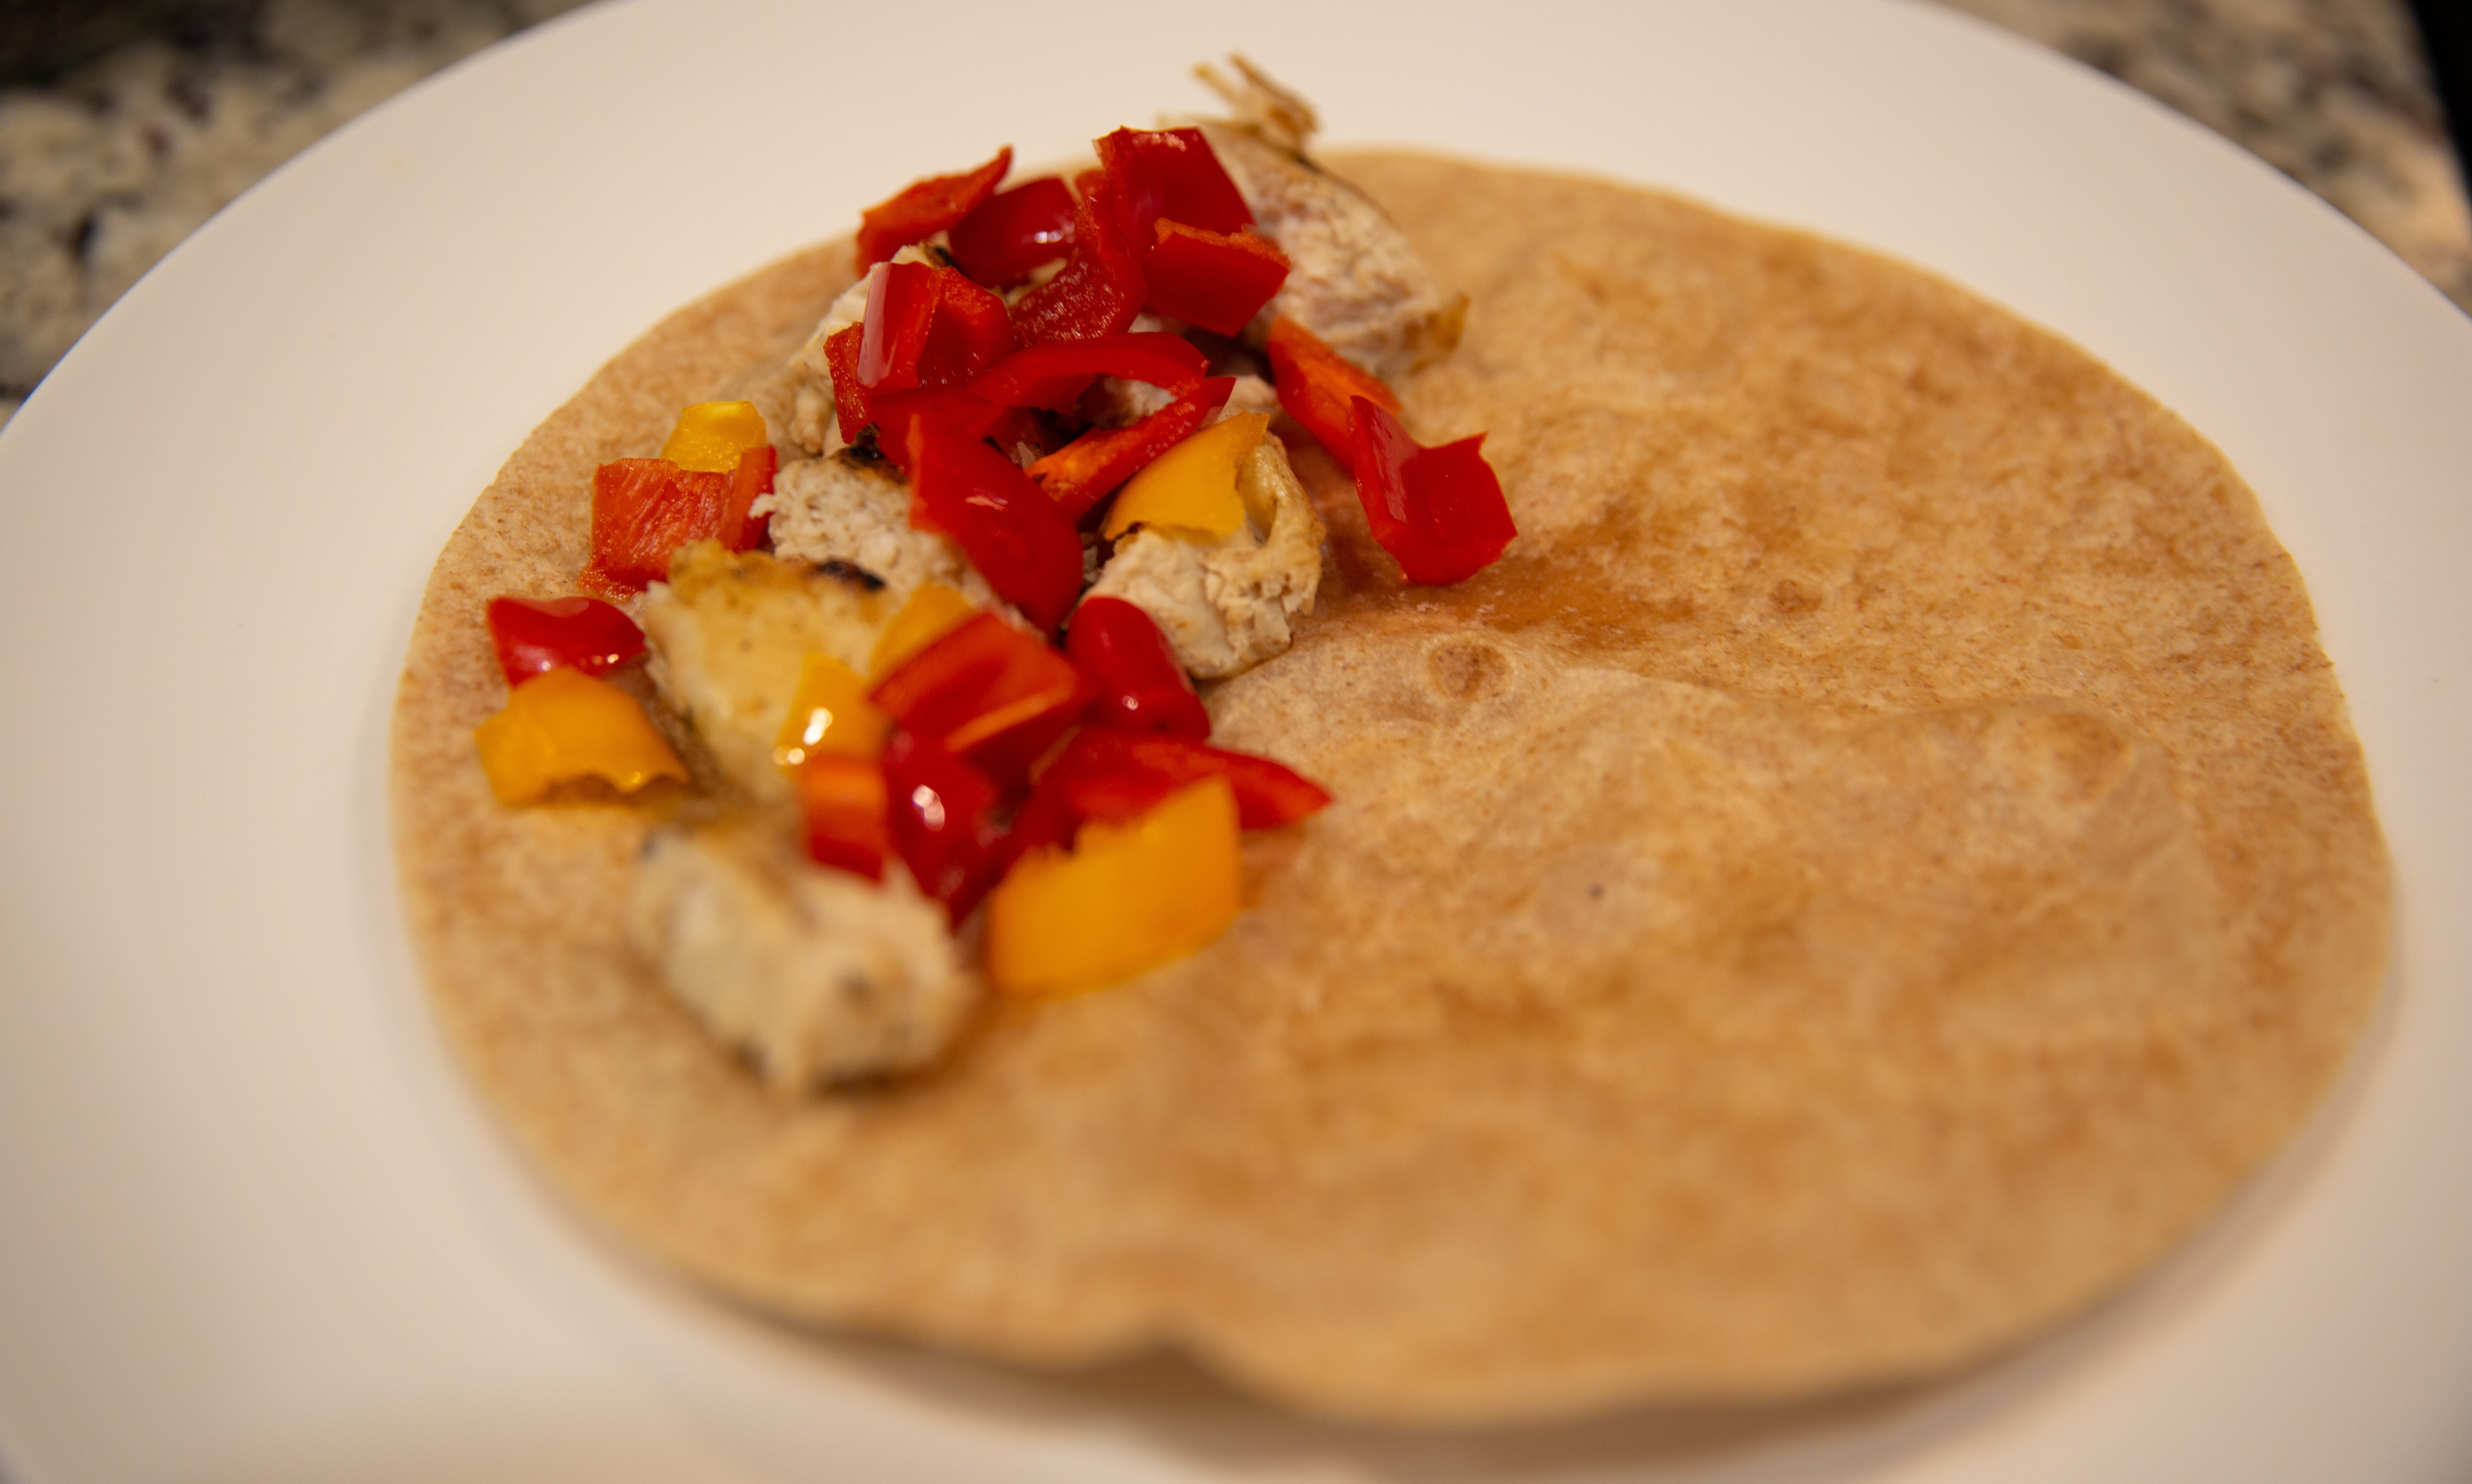 Tortilla with chicken and peppers on it.